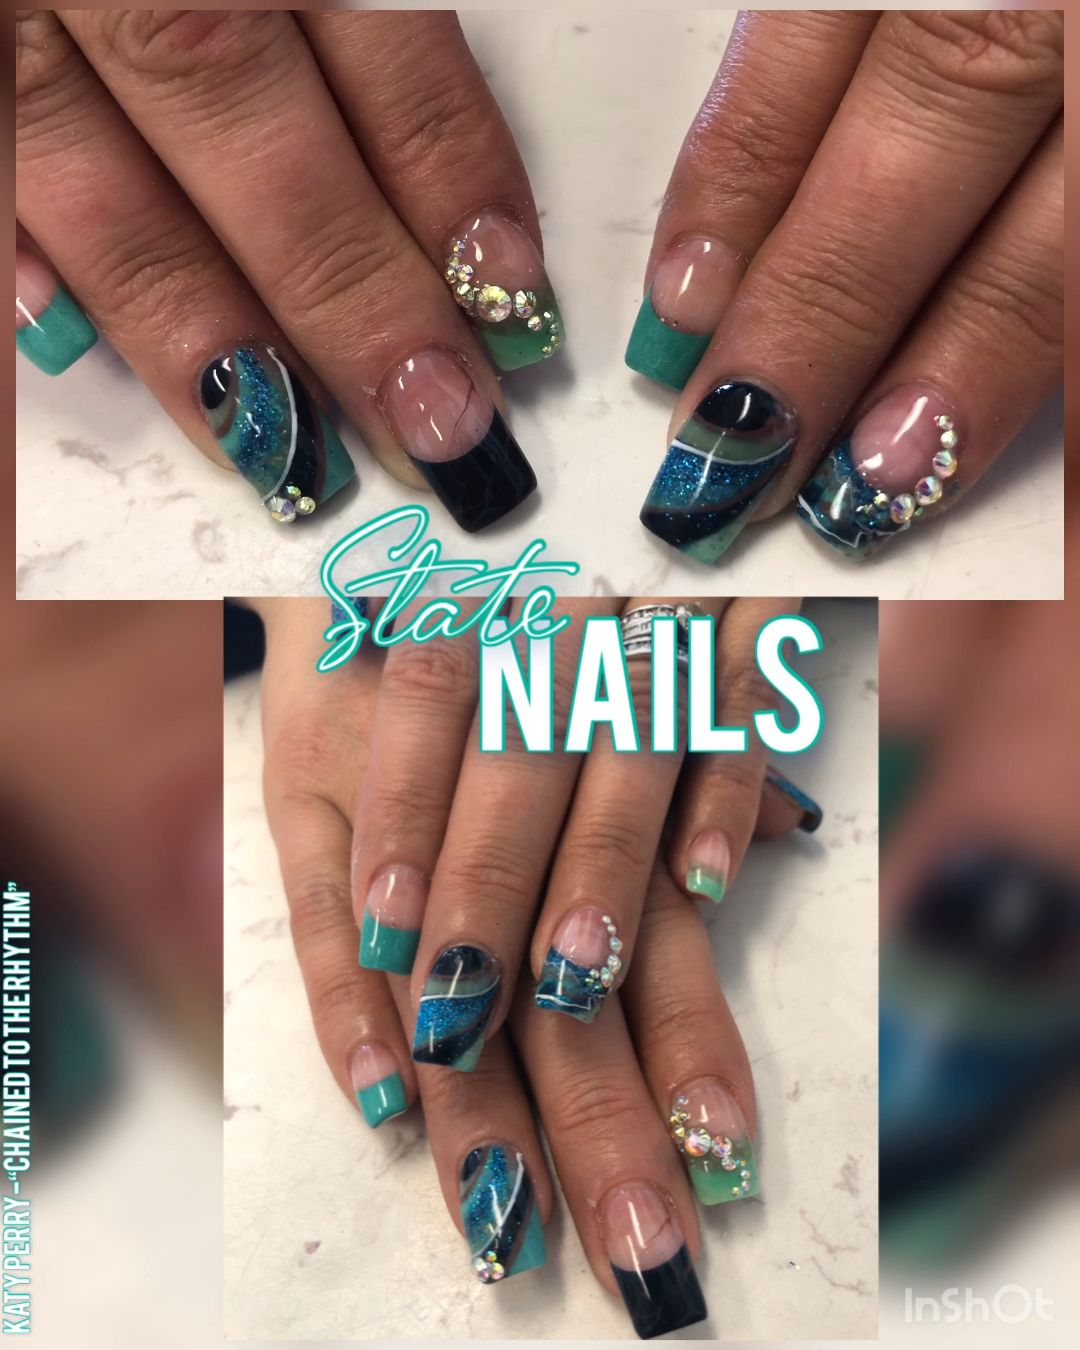 #StPatrick'sDay is some ways away but Are you ready to kick off the beautiful weather with some #color?! Break the winter gloom with some #green and #blue #naildesigns for #march !  #stpatricksday #stpatricksdaycrafts #marbledesign #marblenails #greennails #bluenails #acrylicnails #squarenails #longnails #frenchtipnaildesigns #stpattysday #stpattysdaynails